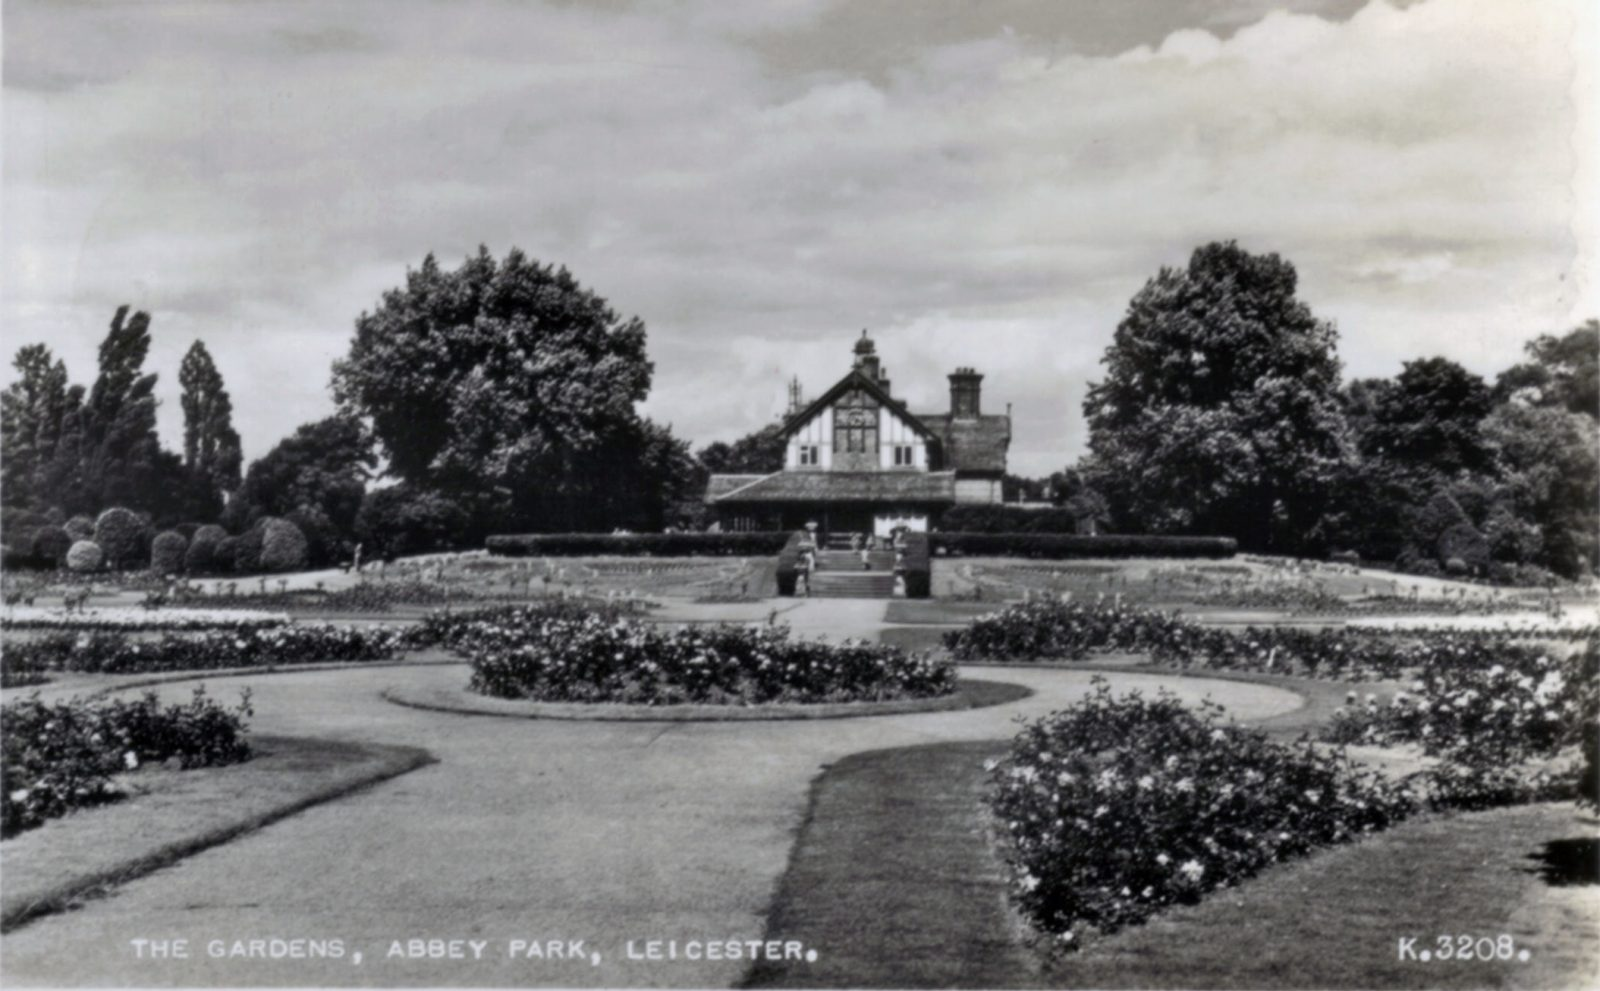 Abbey Park, Leicester. 1941-1960: The Pavilion with formal bedding. Franked 1954 (File:1214)